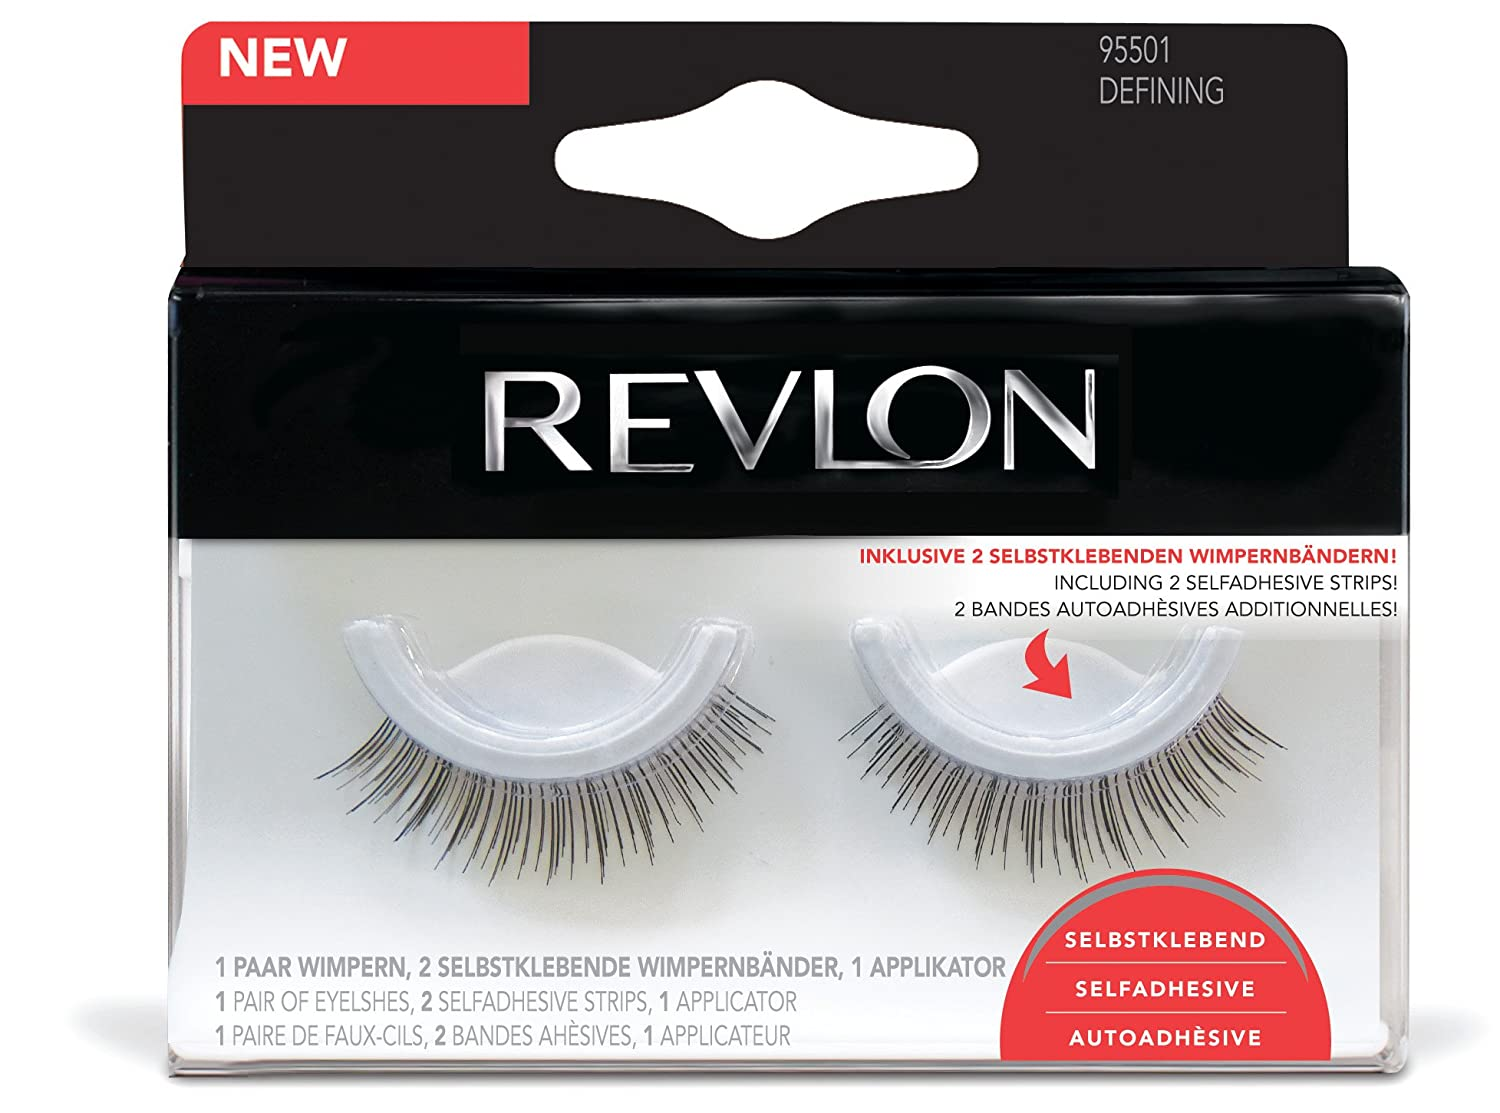 adf3711e161 Buy Revlon Defining False Lashes Self-Adhesive 1 Pair Online at Low Prices  in India - Amazon.in